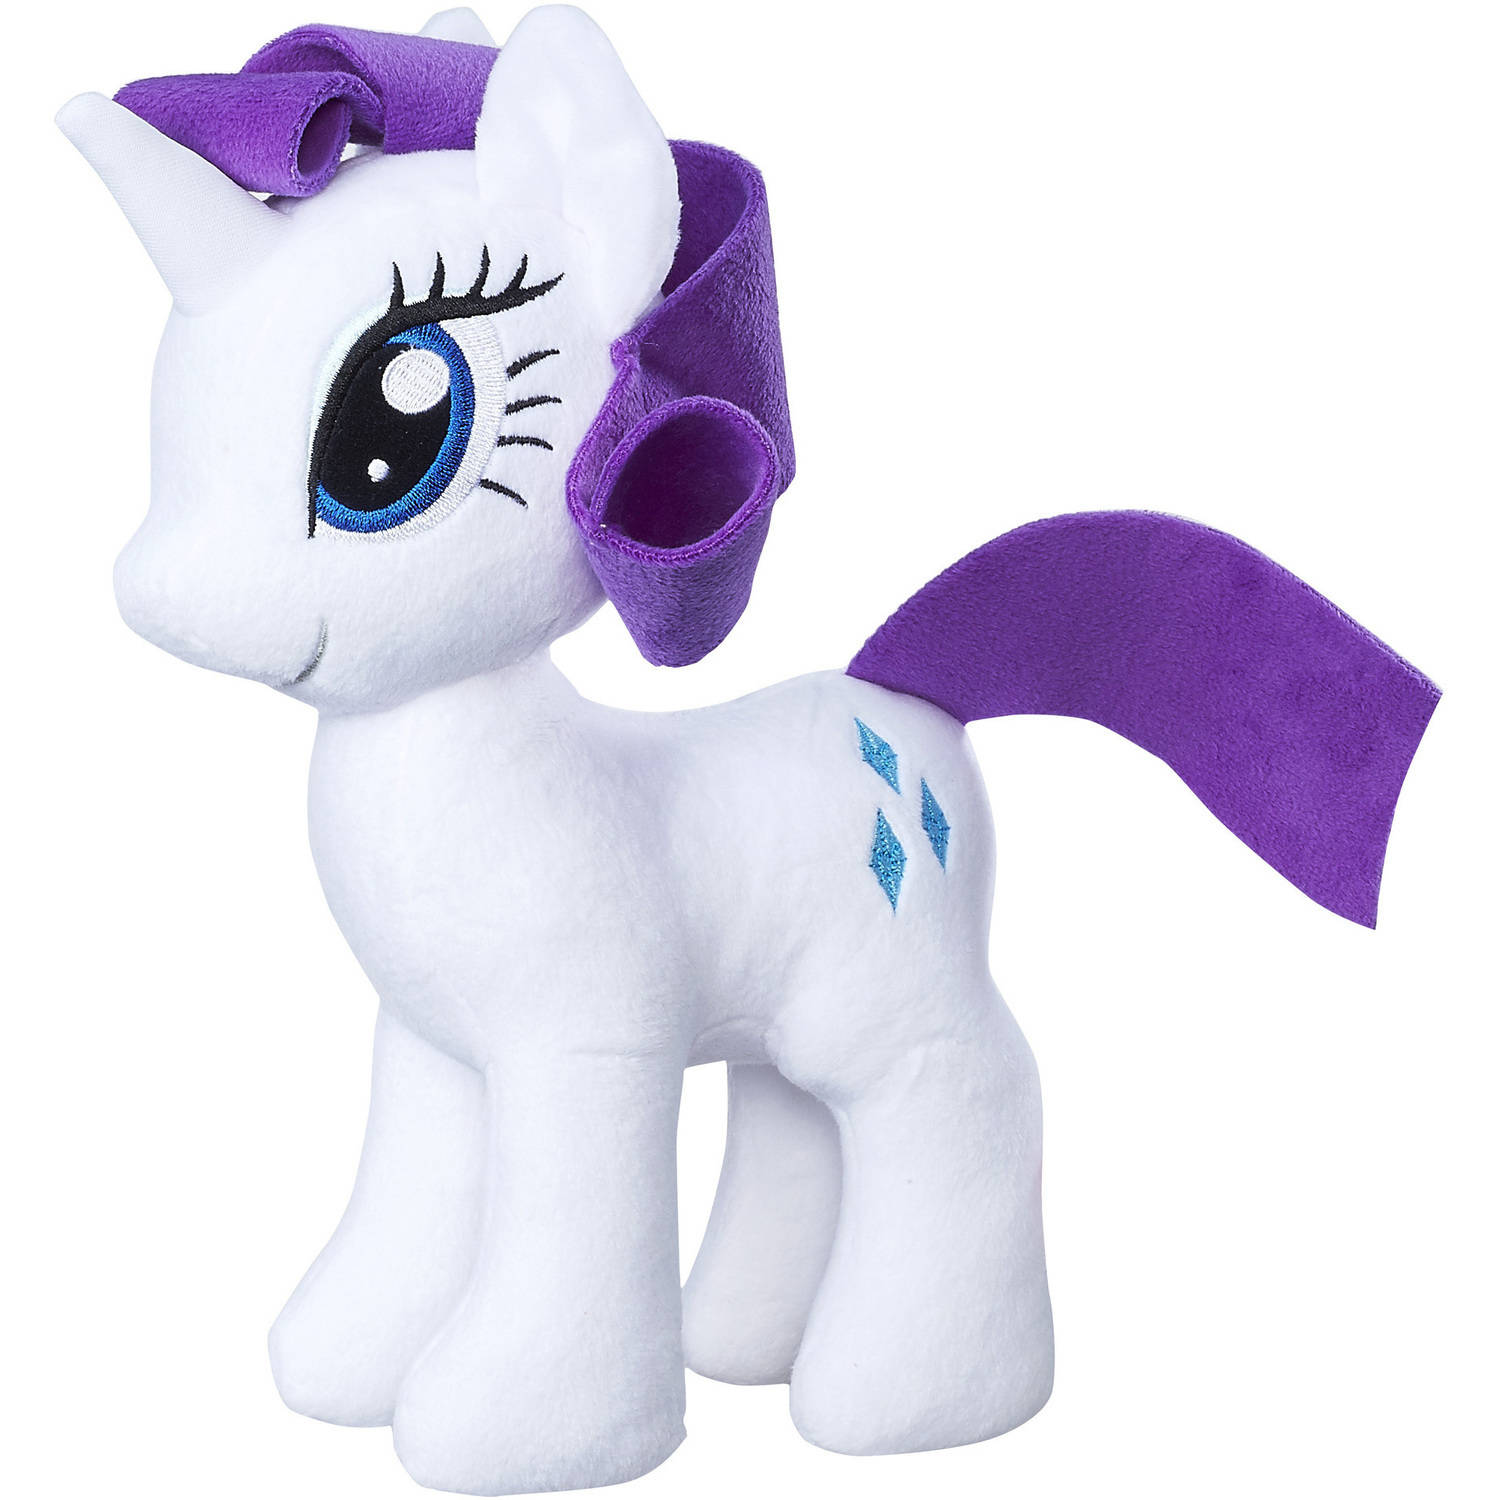 My Little Pony Friendship is Magic Rarity Soft Plush by Hasbro